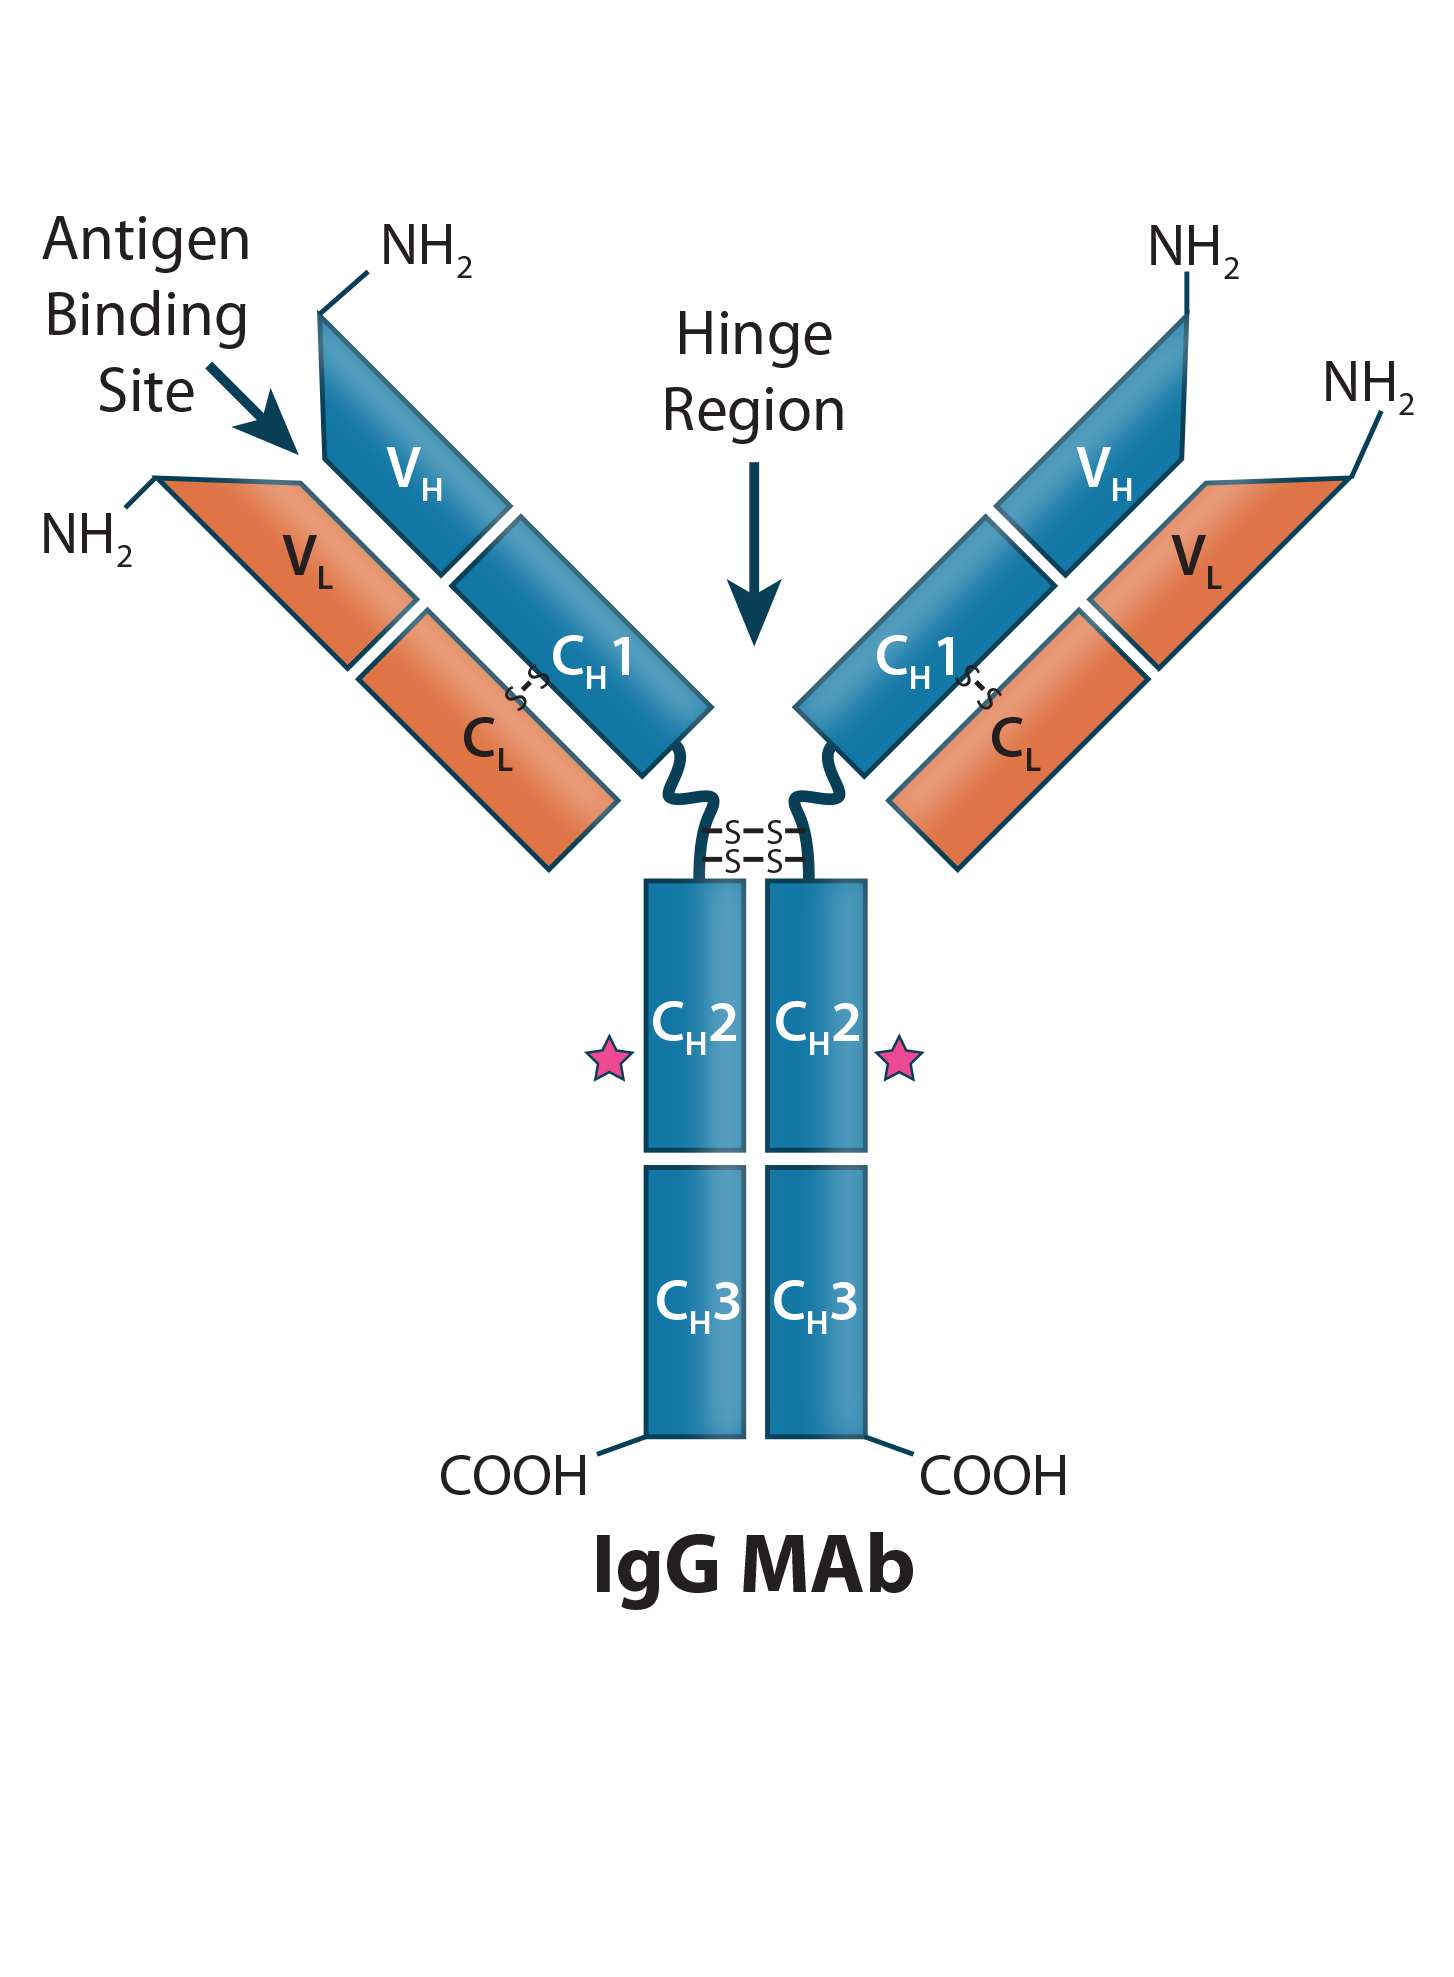 Therapeutic Igg Like Bispecific Antibodies Modular Versatility And